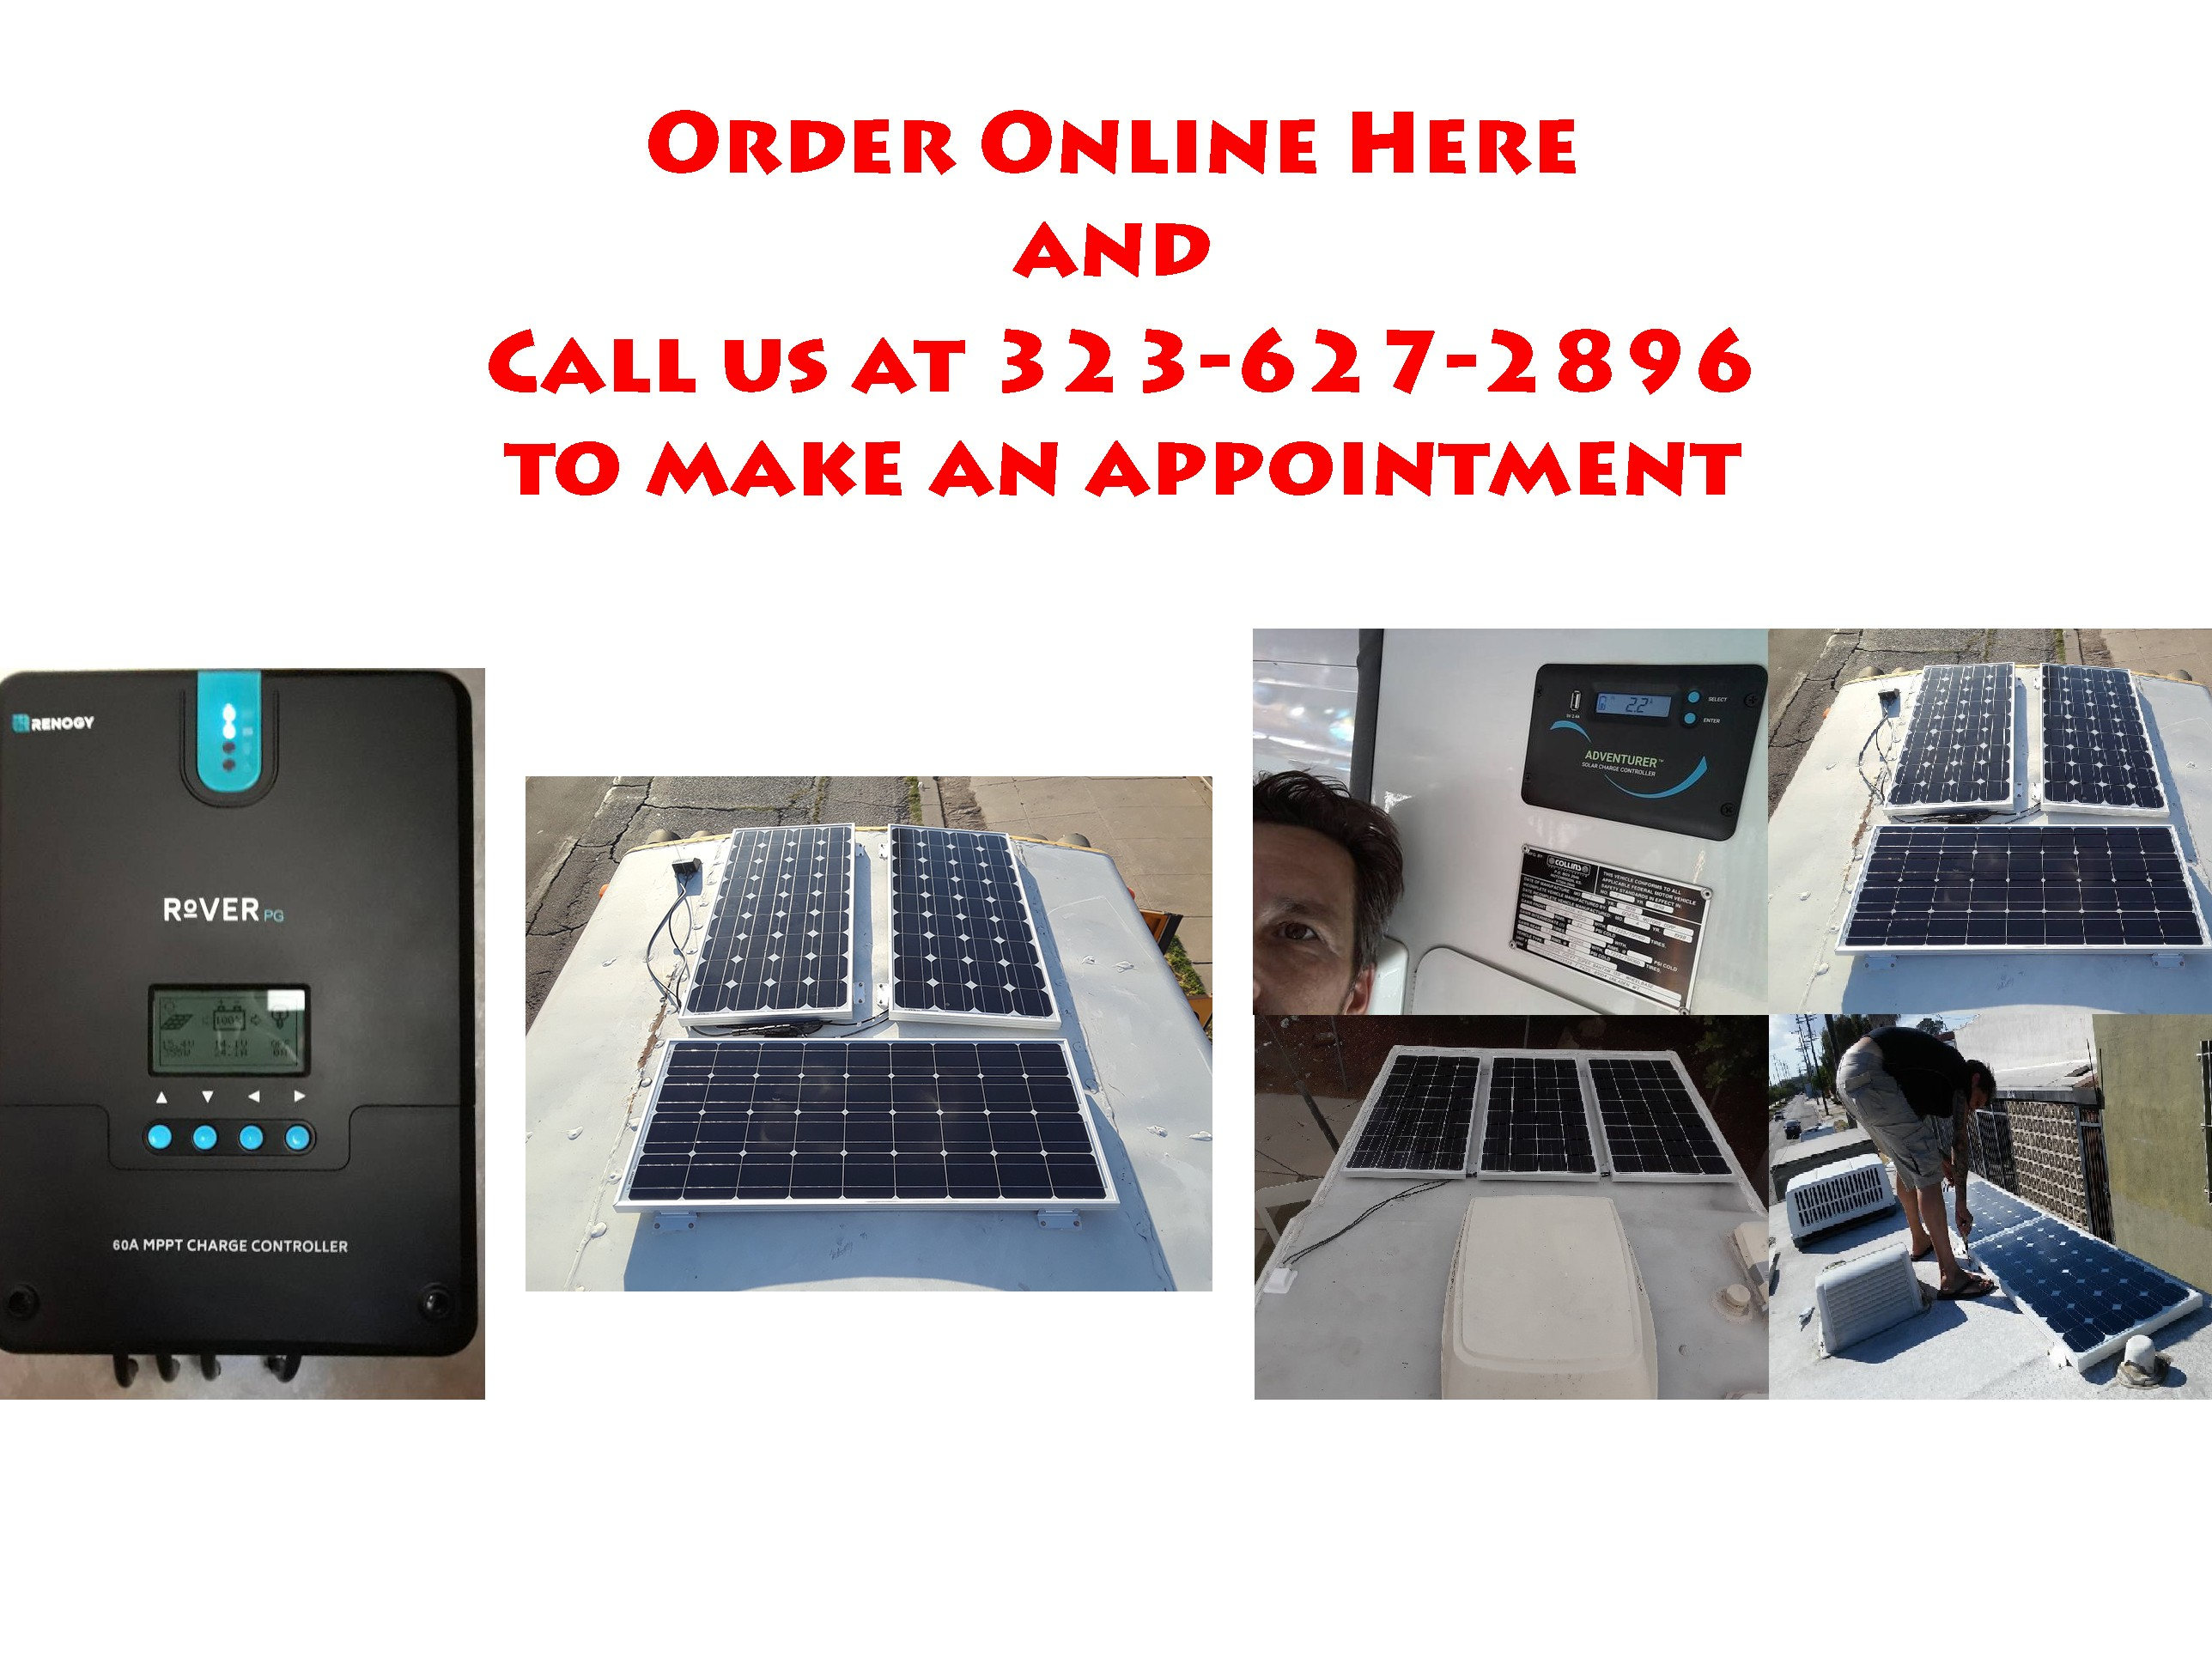 Order Online Here and Call 323-627-2896 to make an appointment for a High Watt Solar Install!!